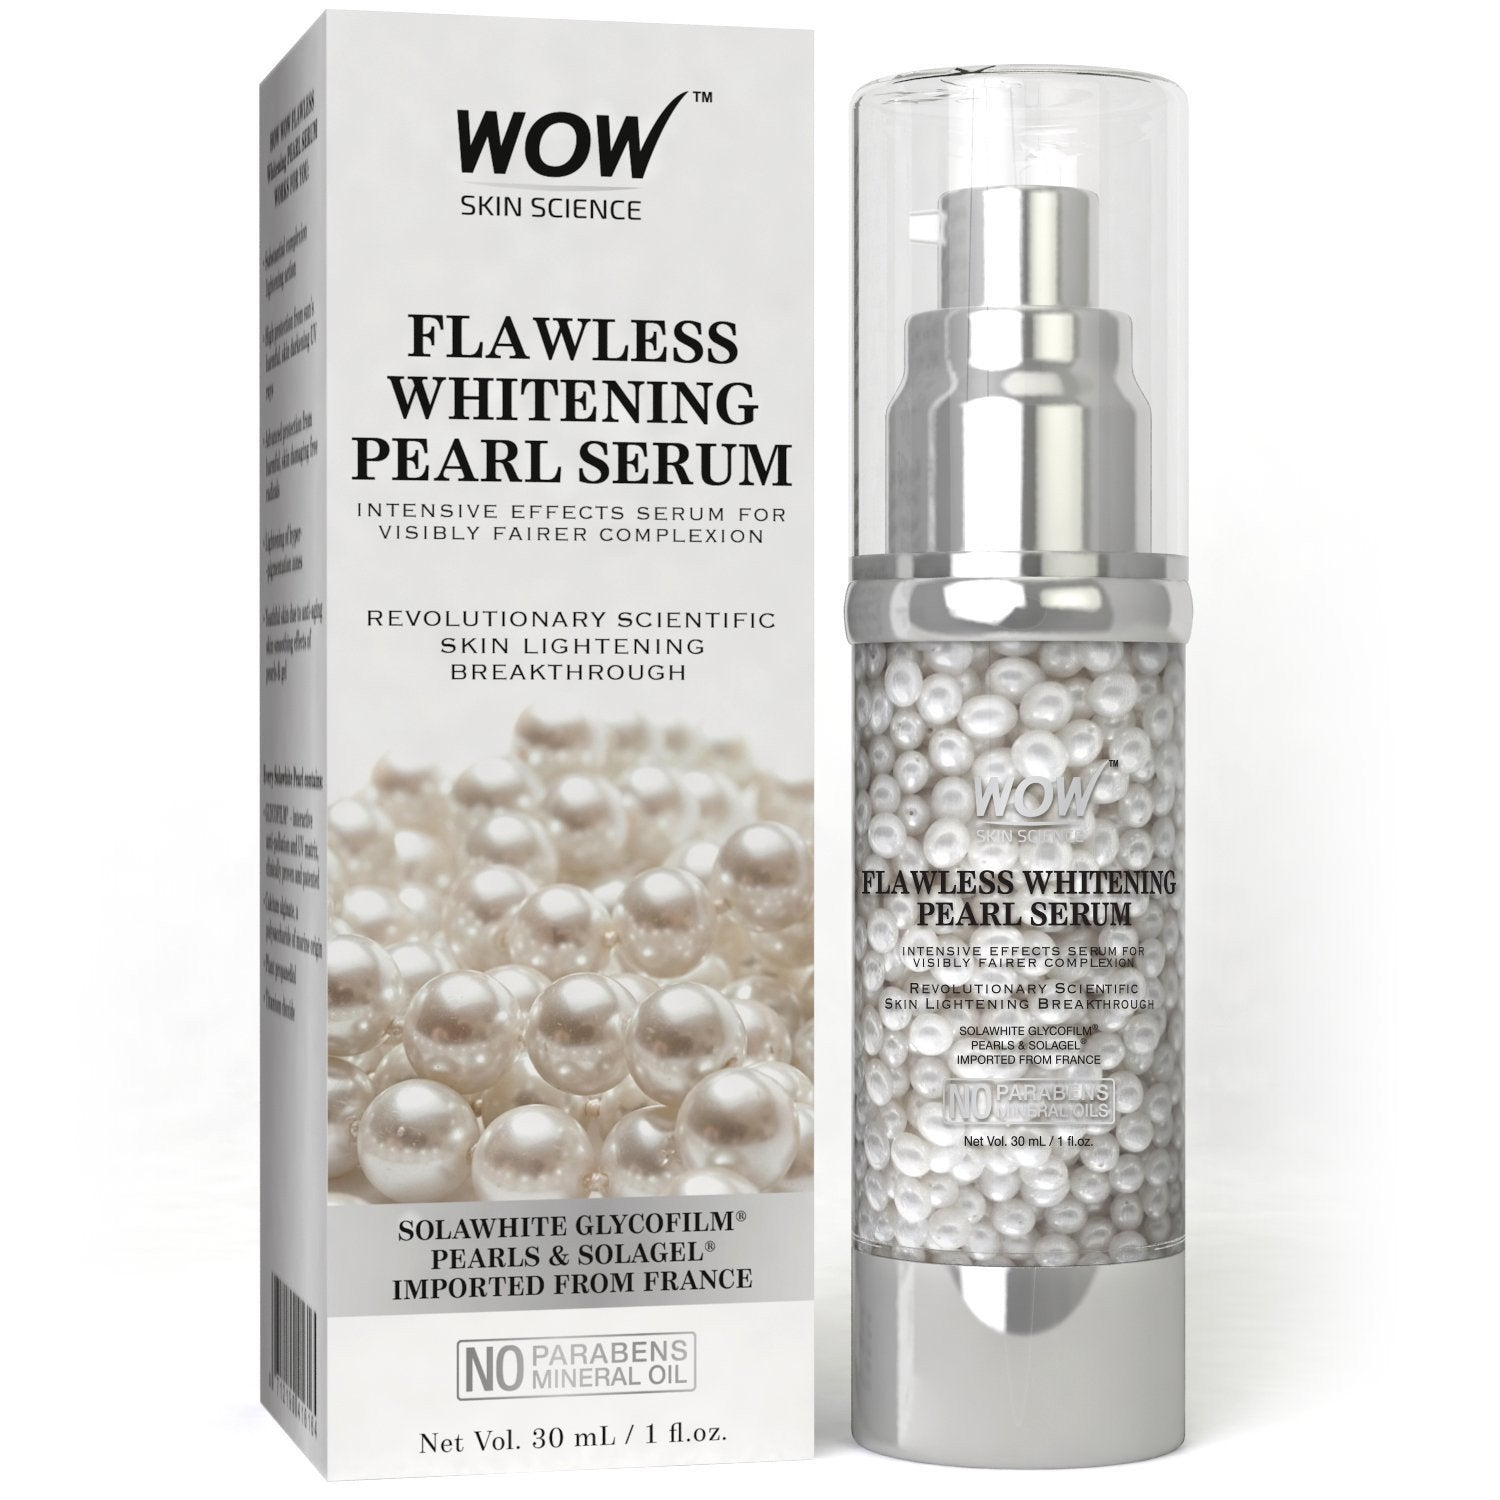 WOW Skin Science Flawless Whitening Pearl Serum